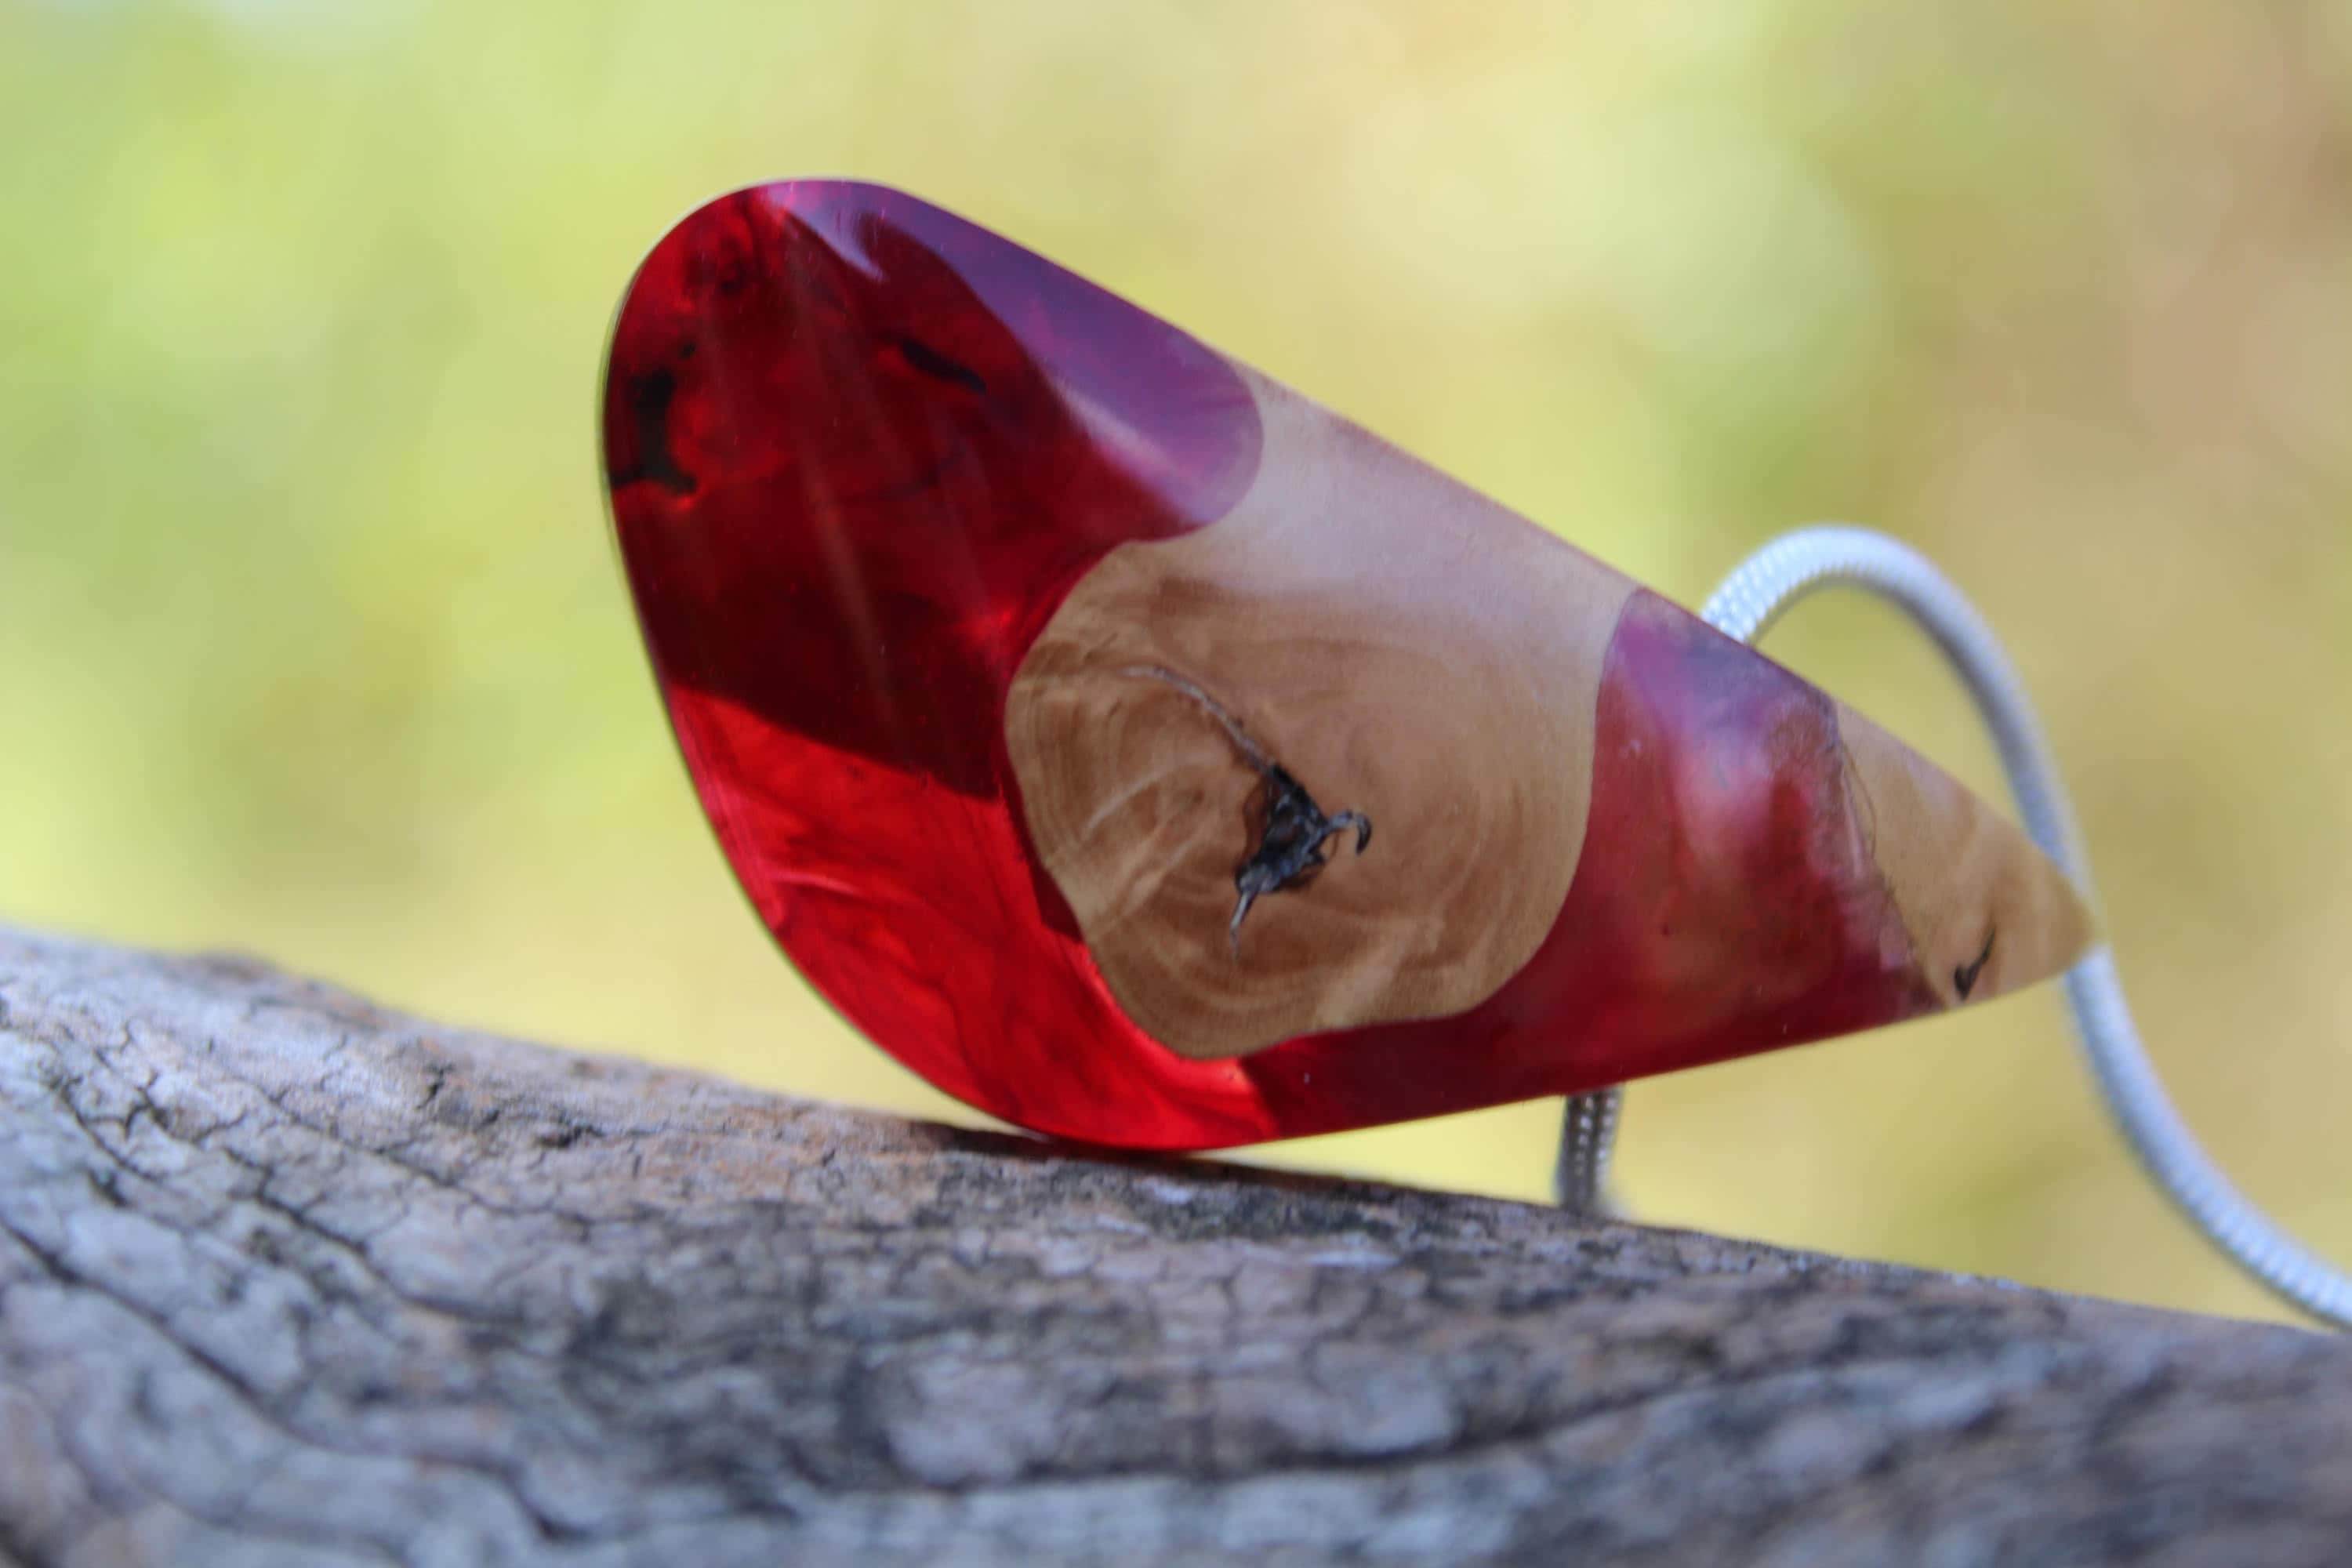 Statement Jewelry Wooden pendant Red Resin Necklace Wooden gift Resin Wood Wood Jewelry Gift Necklace Boho Chic Wood resin pendant